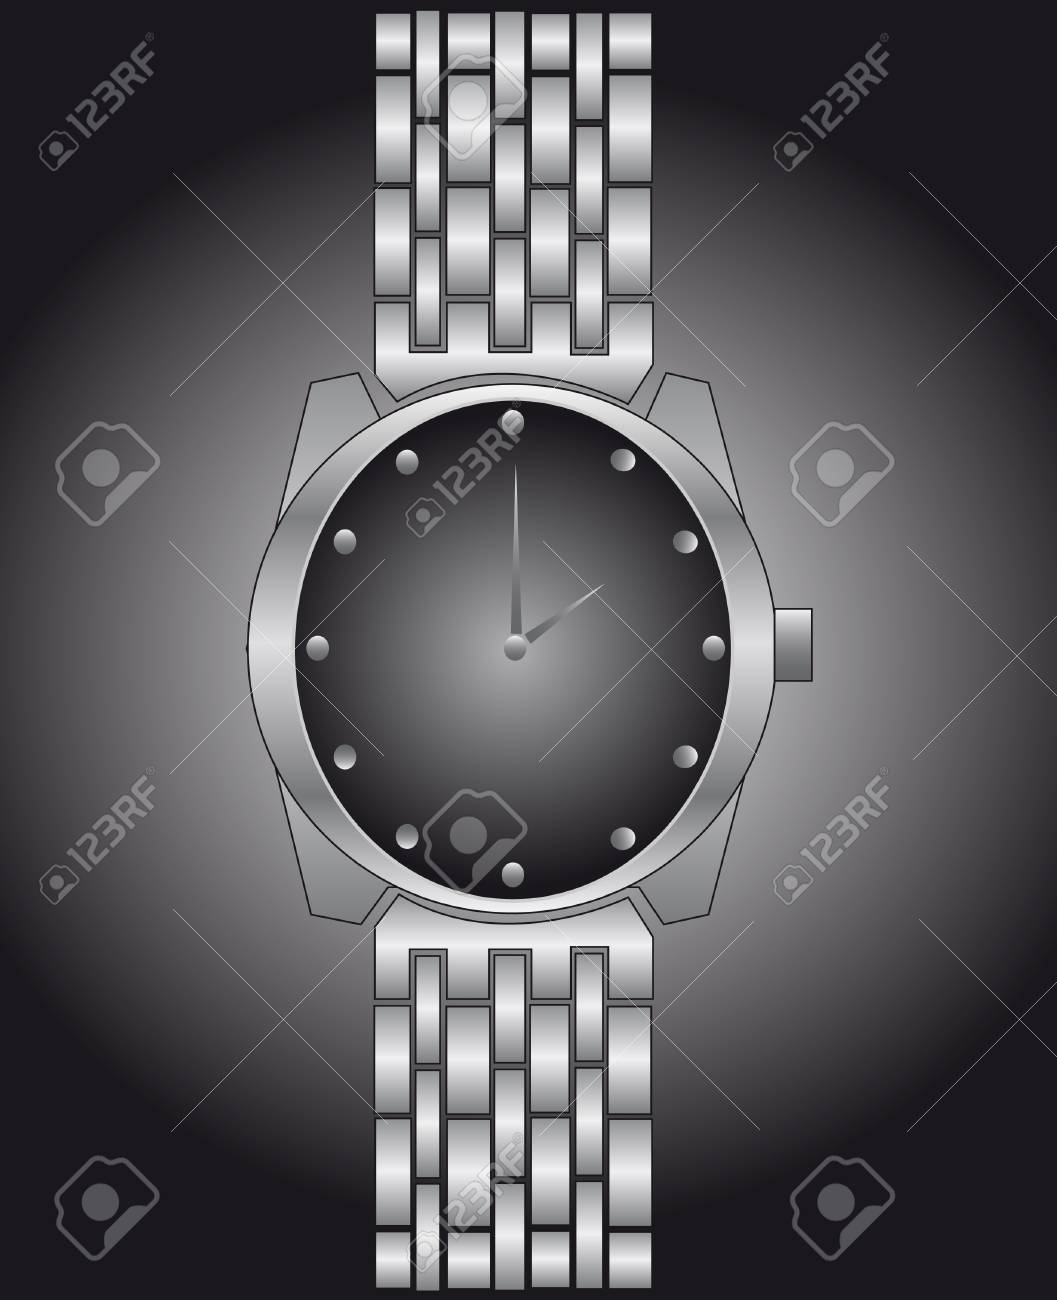 Watch in a black-and-white variant Stock Vector - 4133508